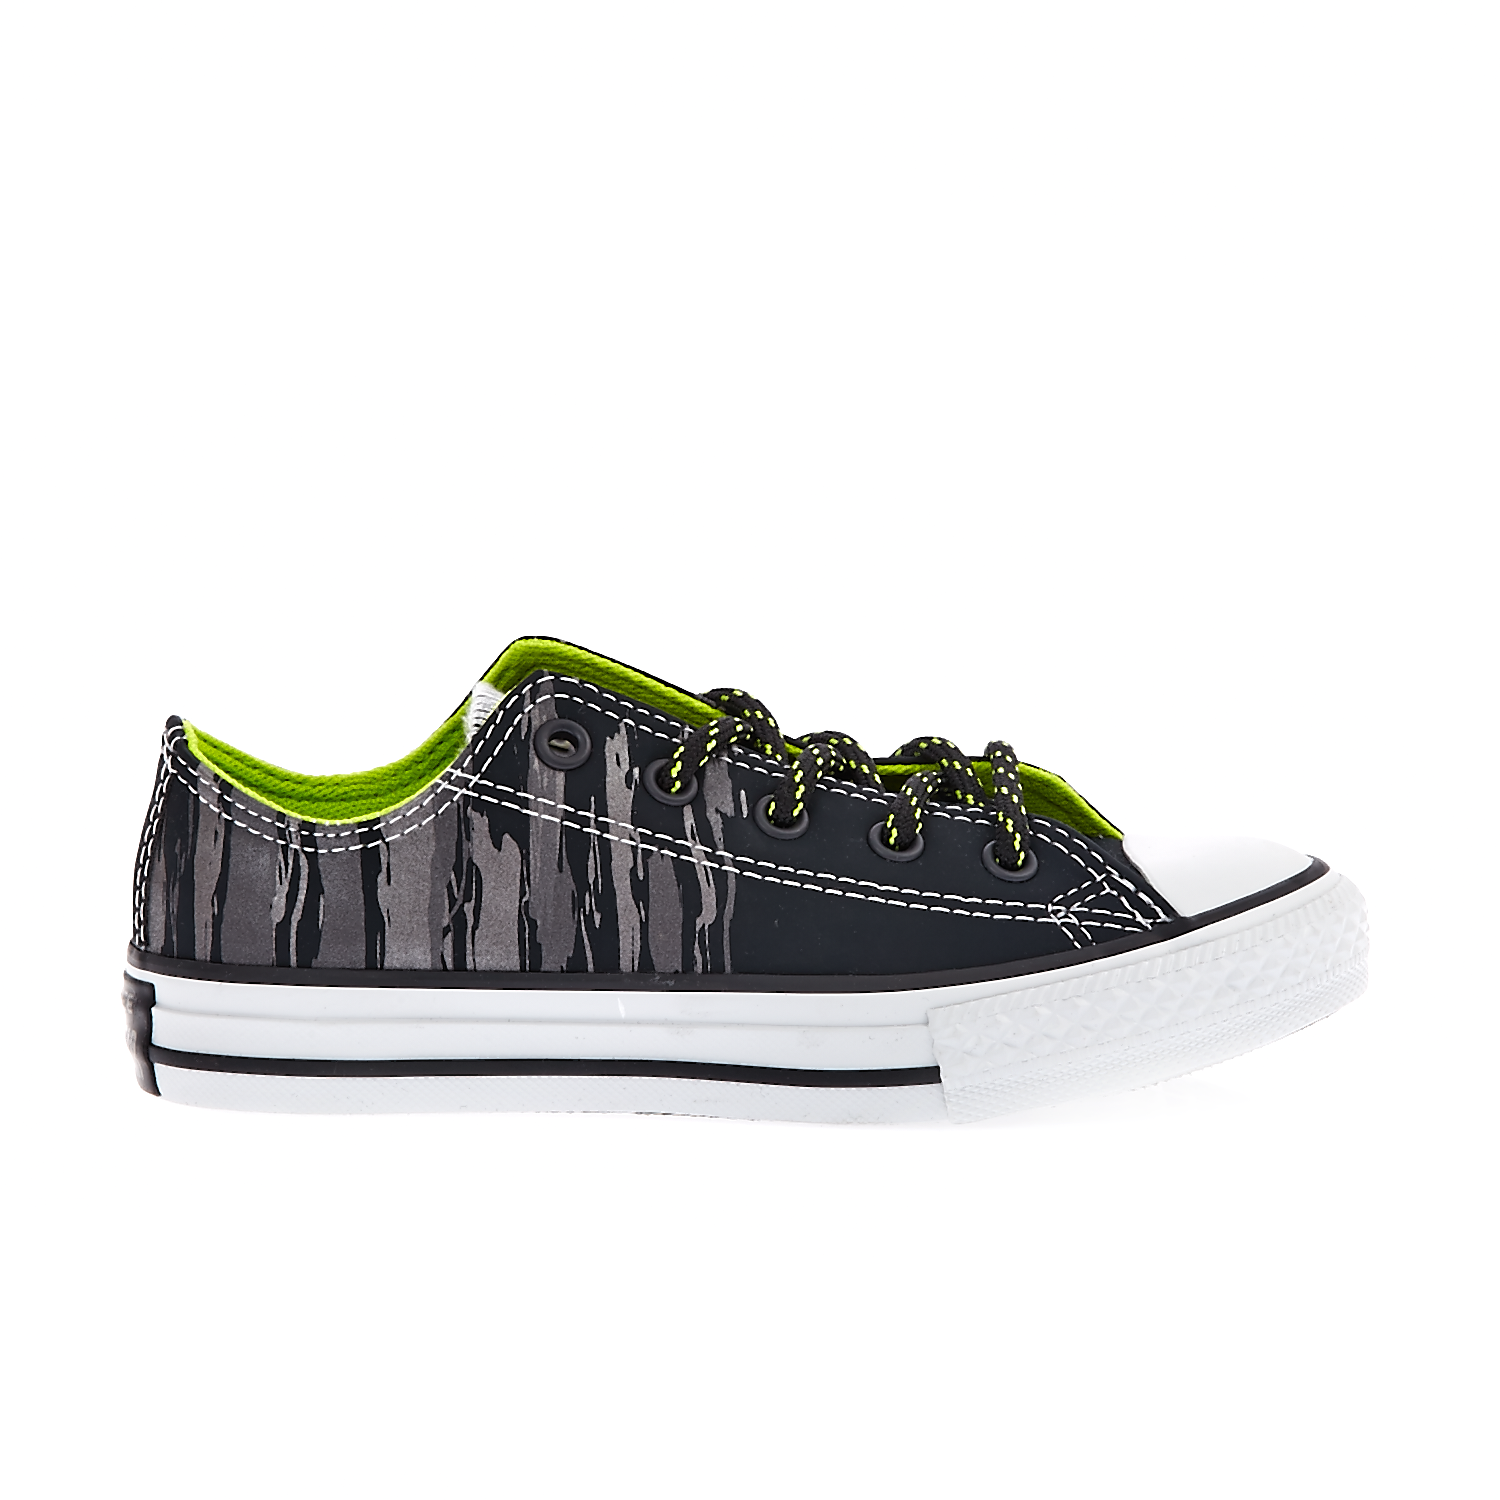 CONVERSE – Παιδικά παπούτσια Chuck Taylor All Star Ox μαύρα-ανθρακί